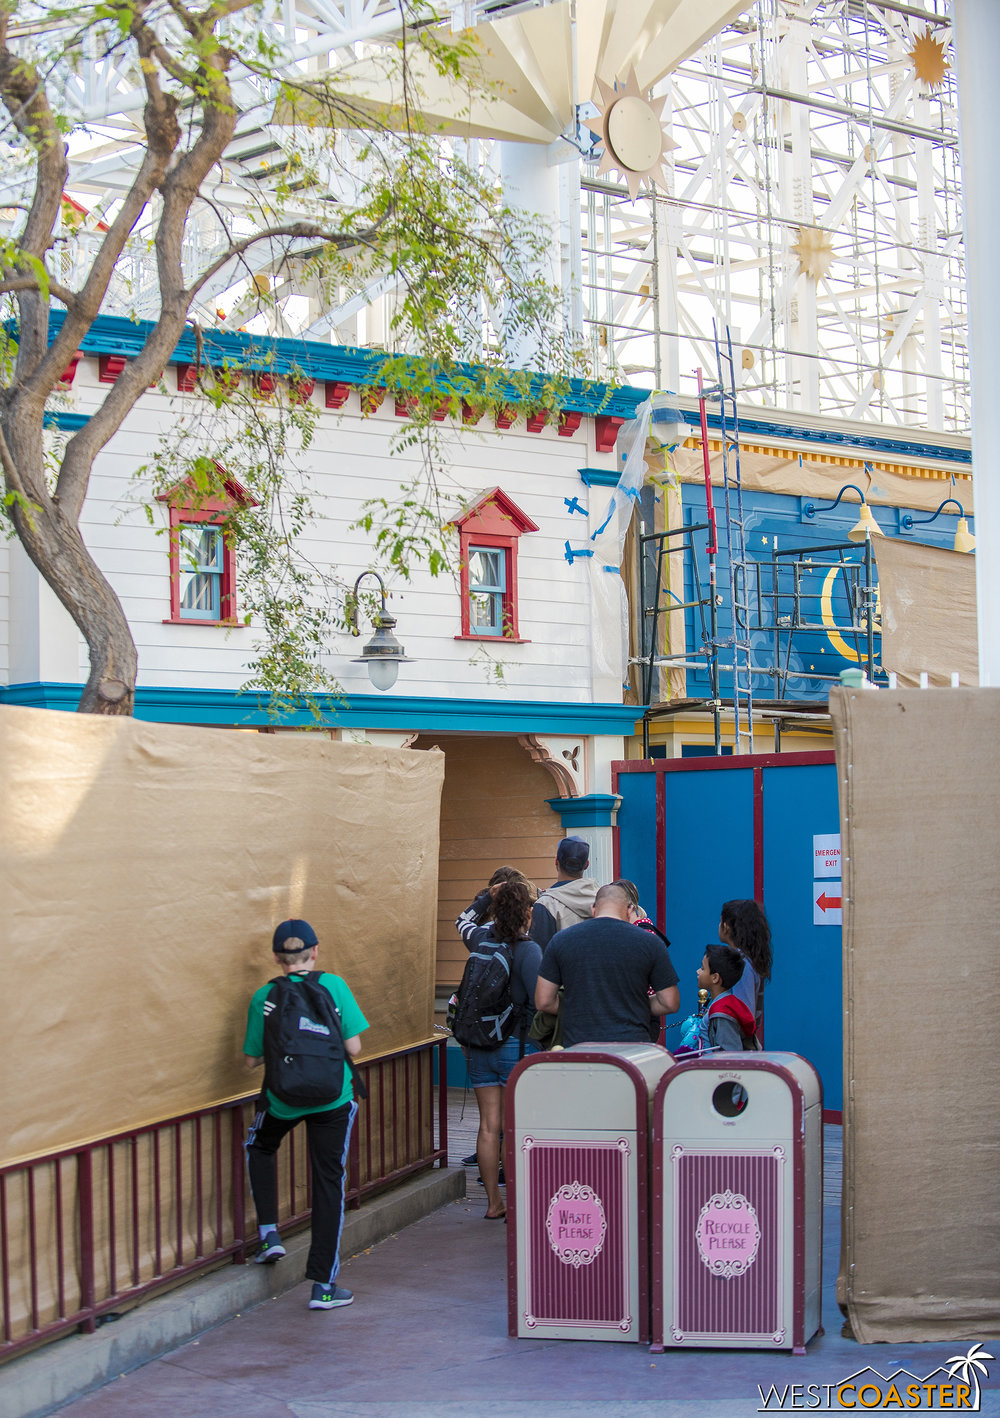 The main queue and Mr. Potato Head are being refurbished.